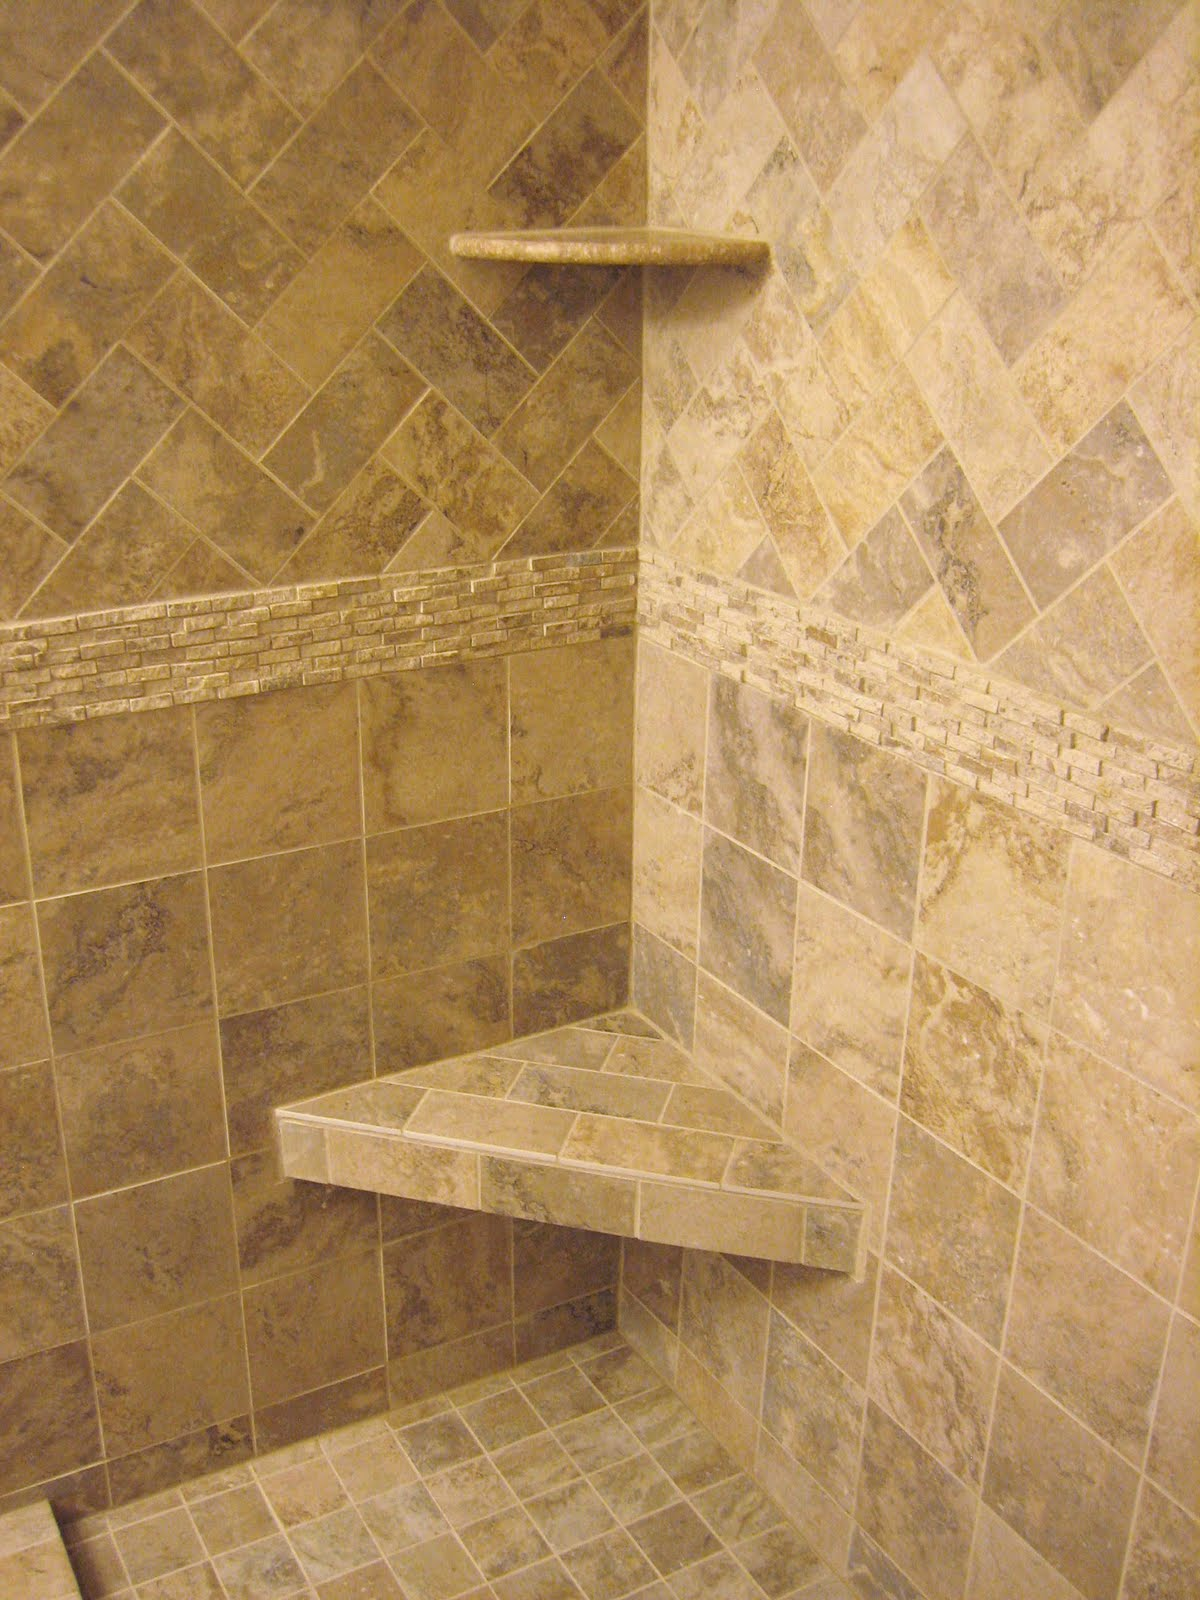 H winter showroom blog june 2010 for Master bath tile designs